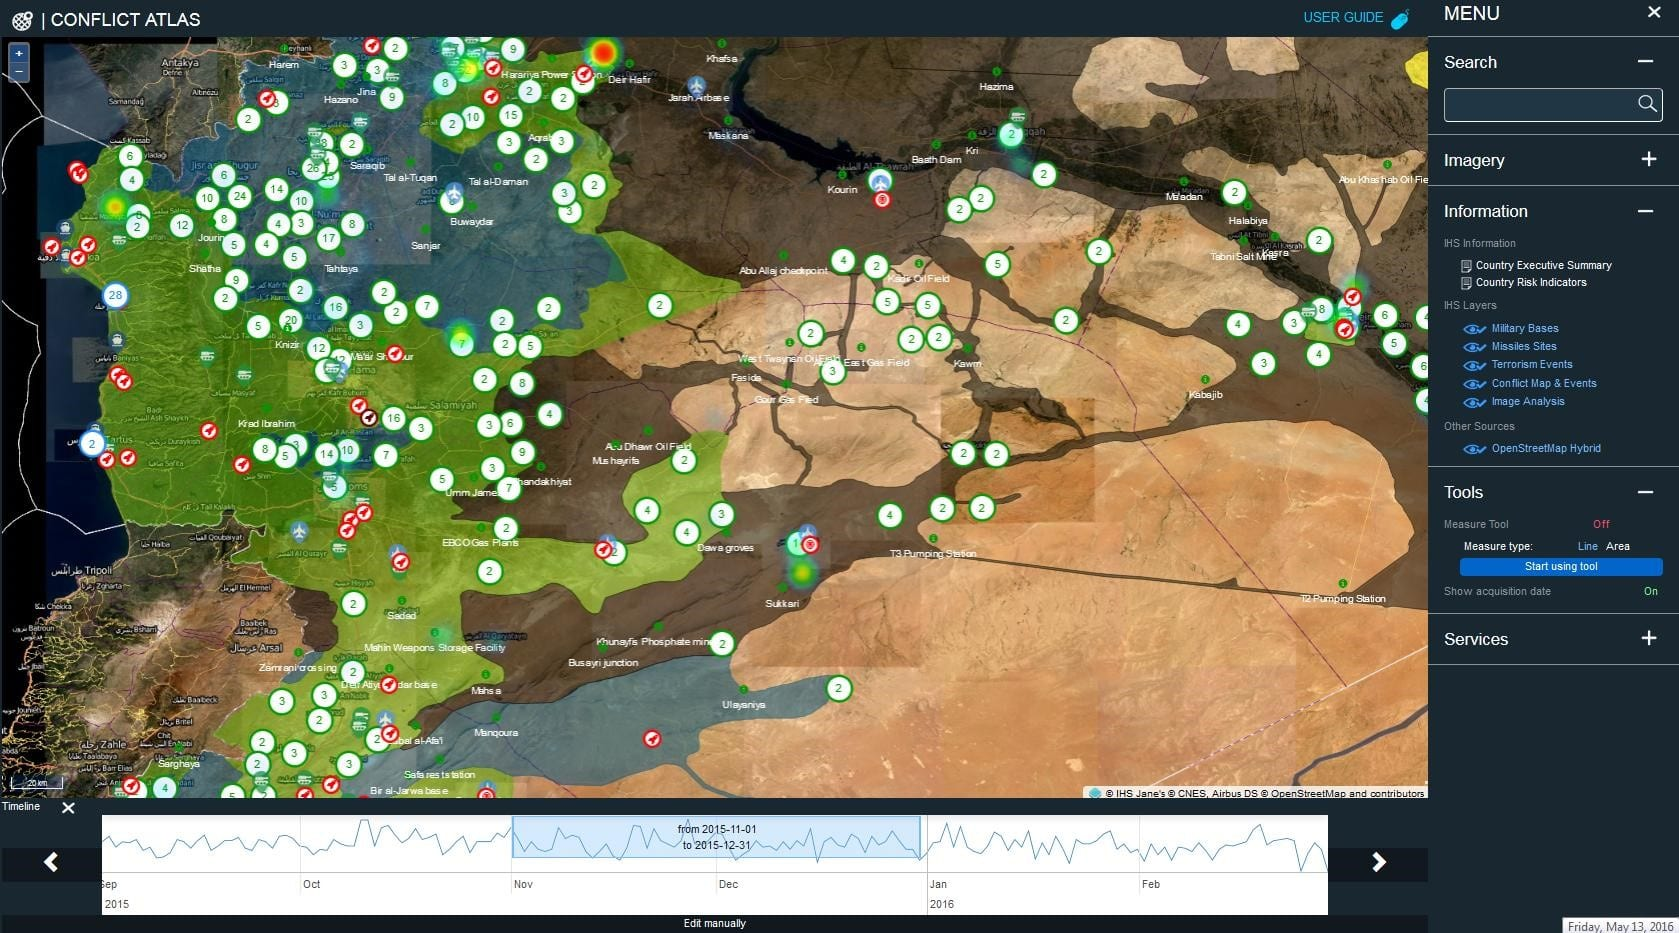 Conflict atlas ihs markit caption geotagging of military bases missile sites terrorism events conflict map and events gumiabroncs Gallery